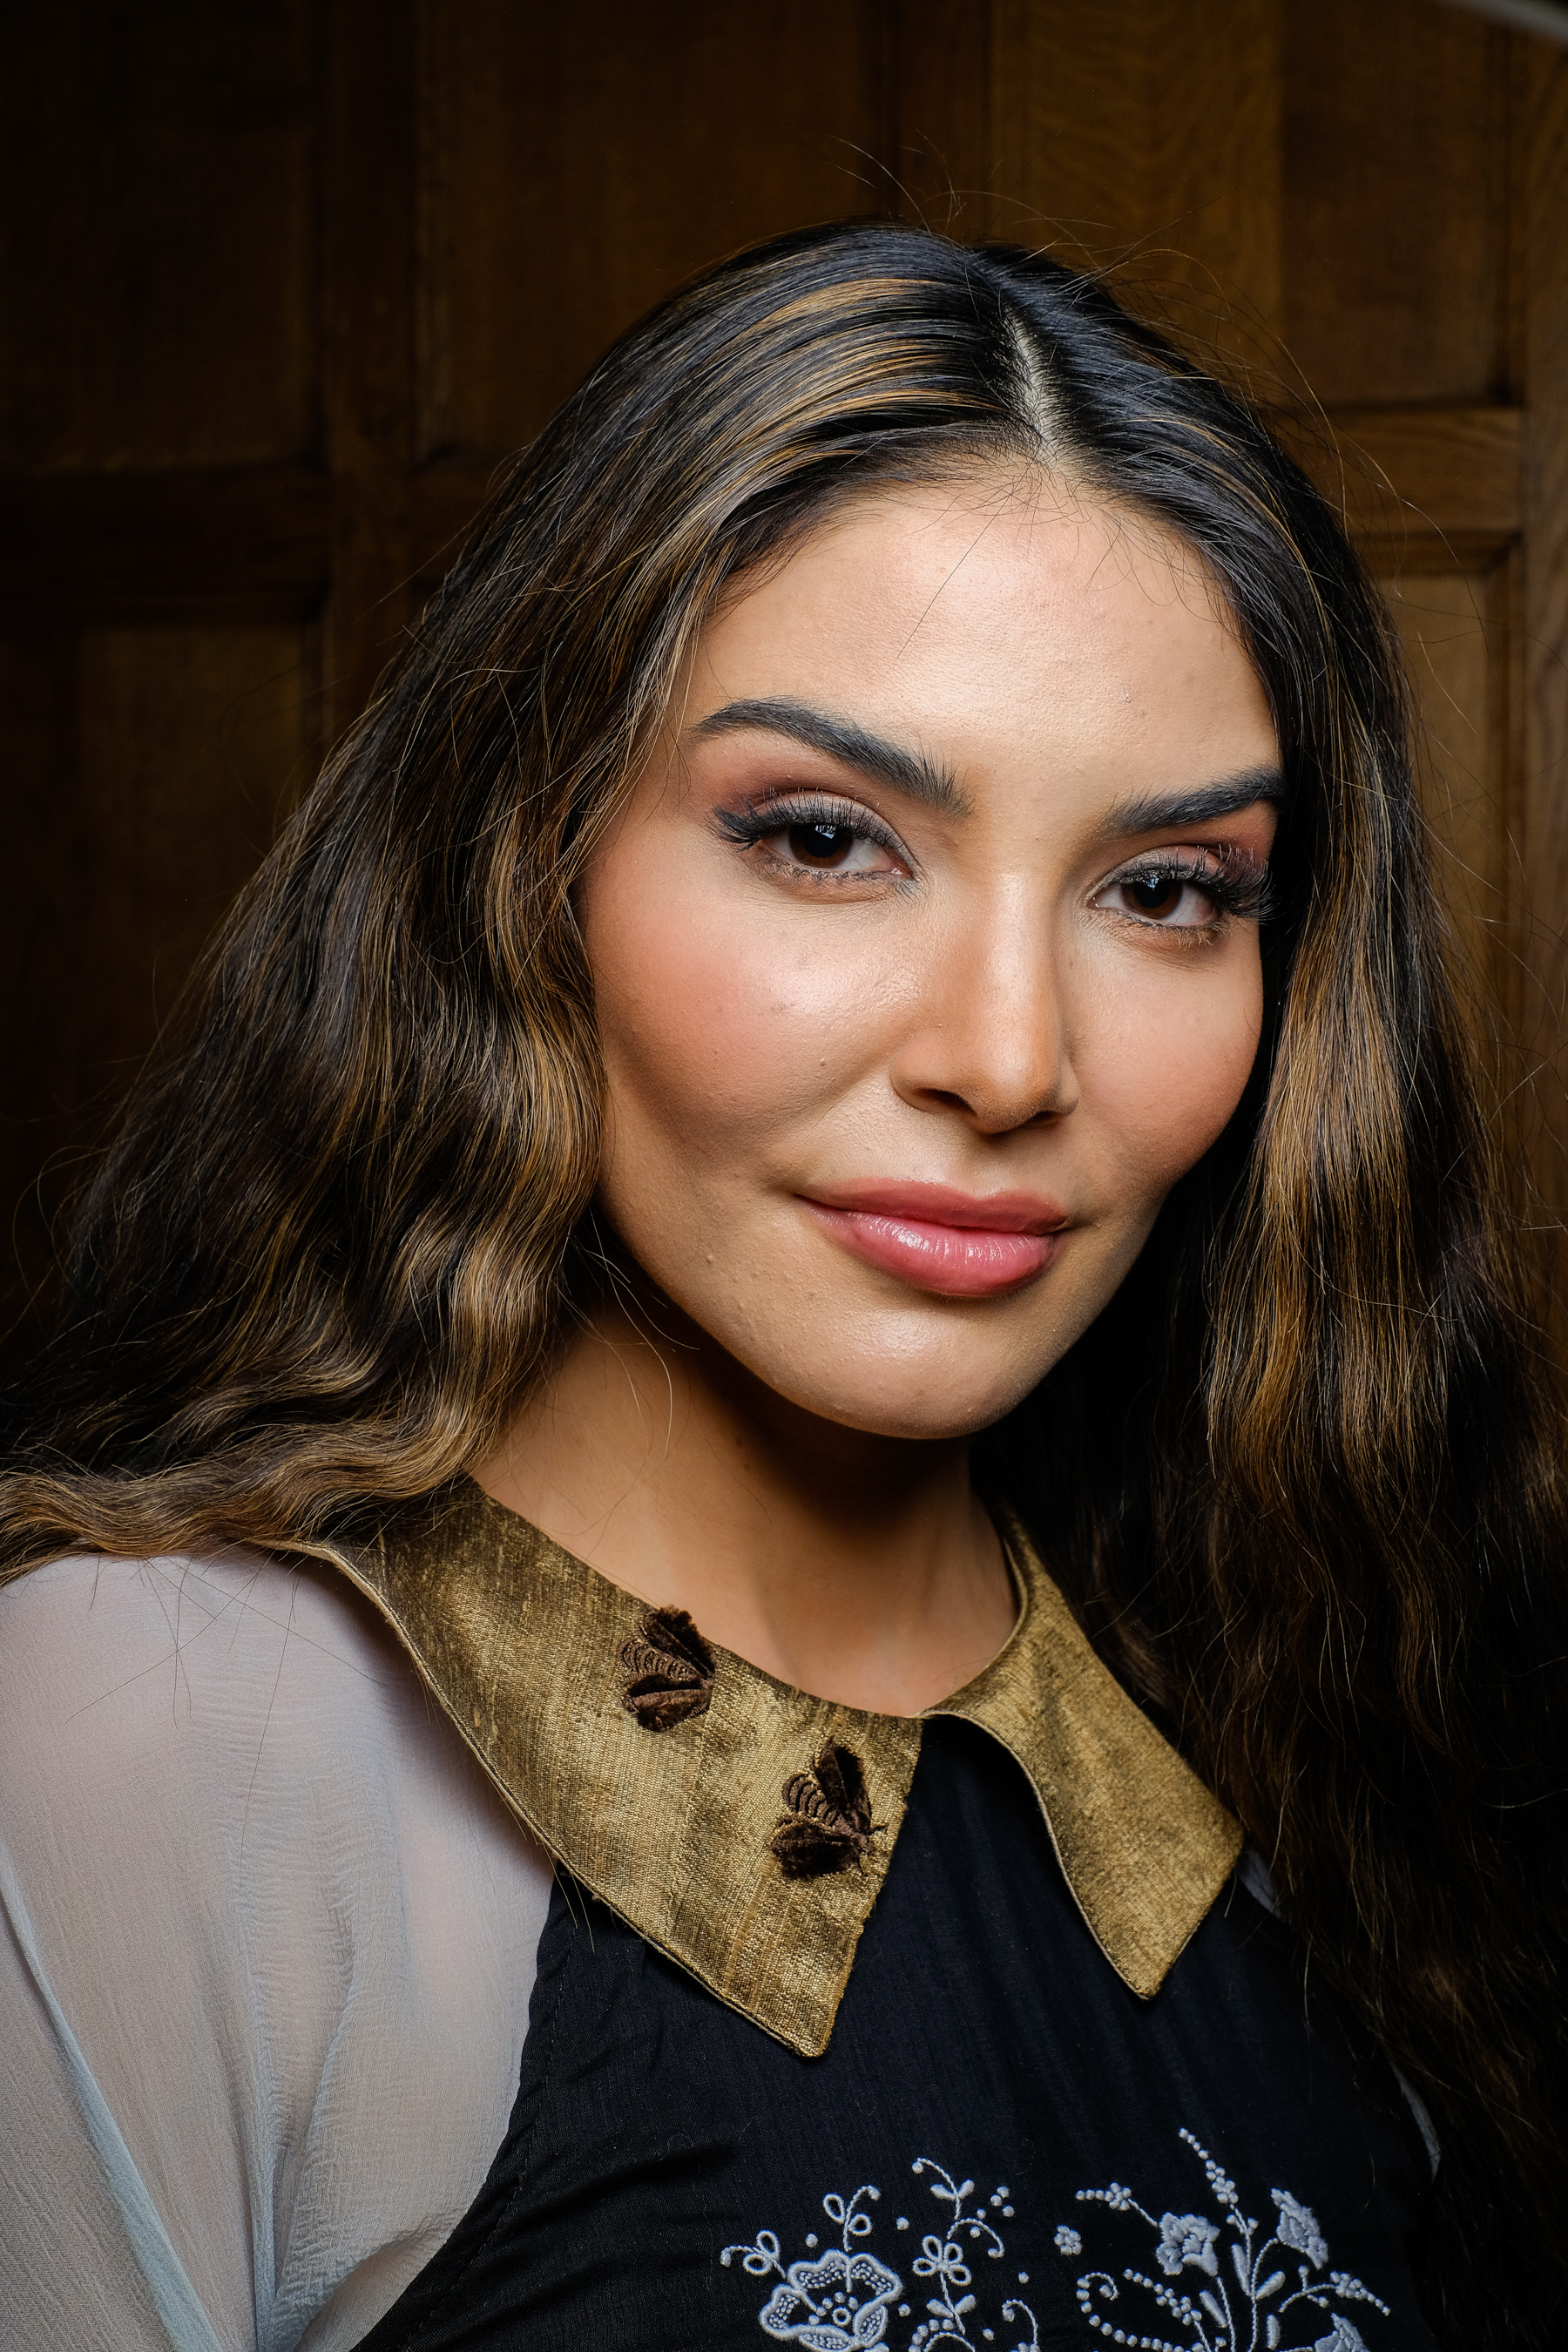 Prophetik Spring 2021 Fashion Show backstage beautyPhotos